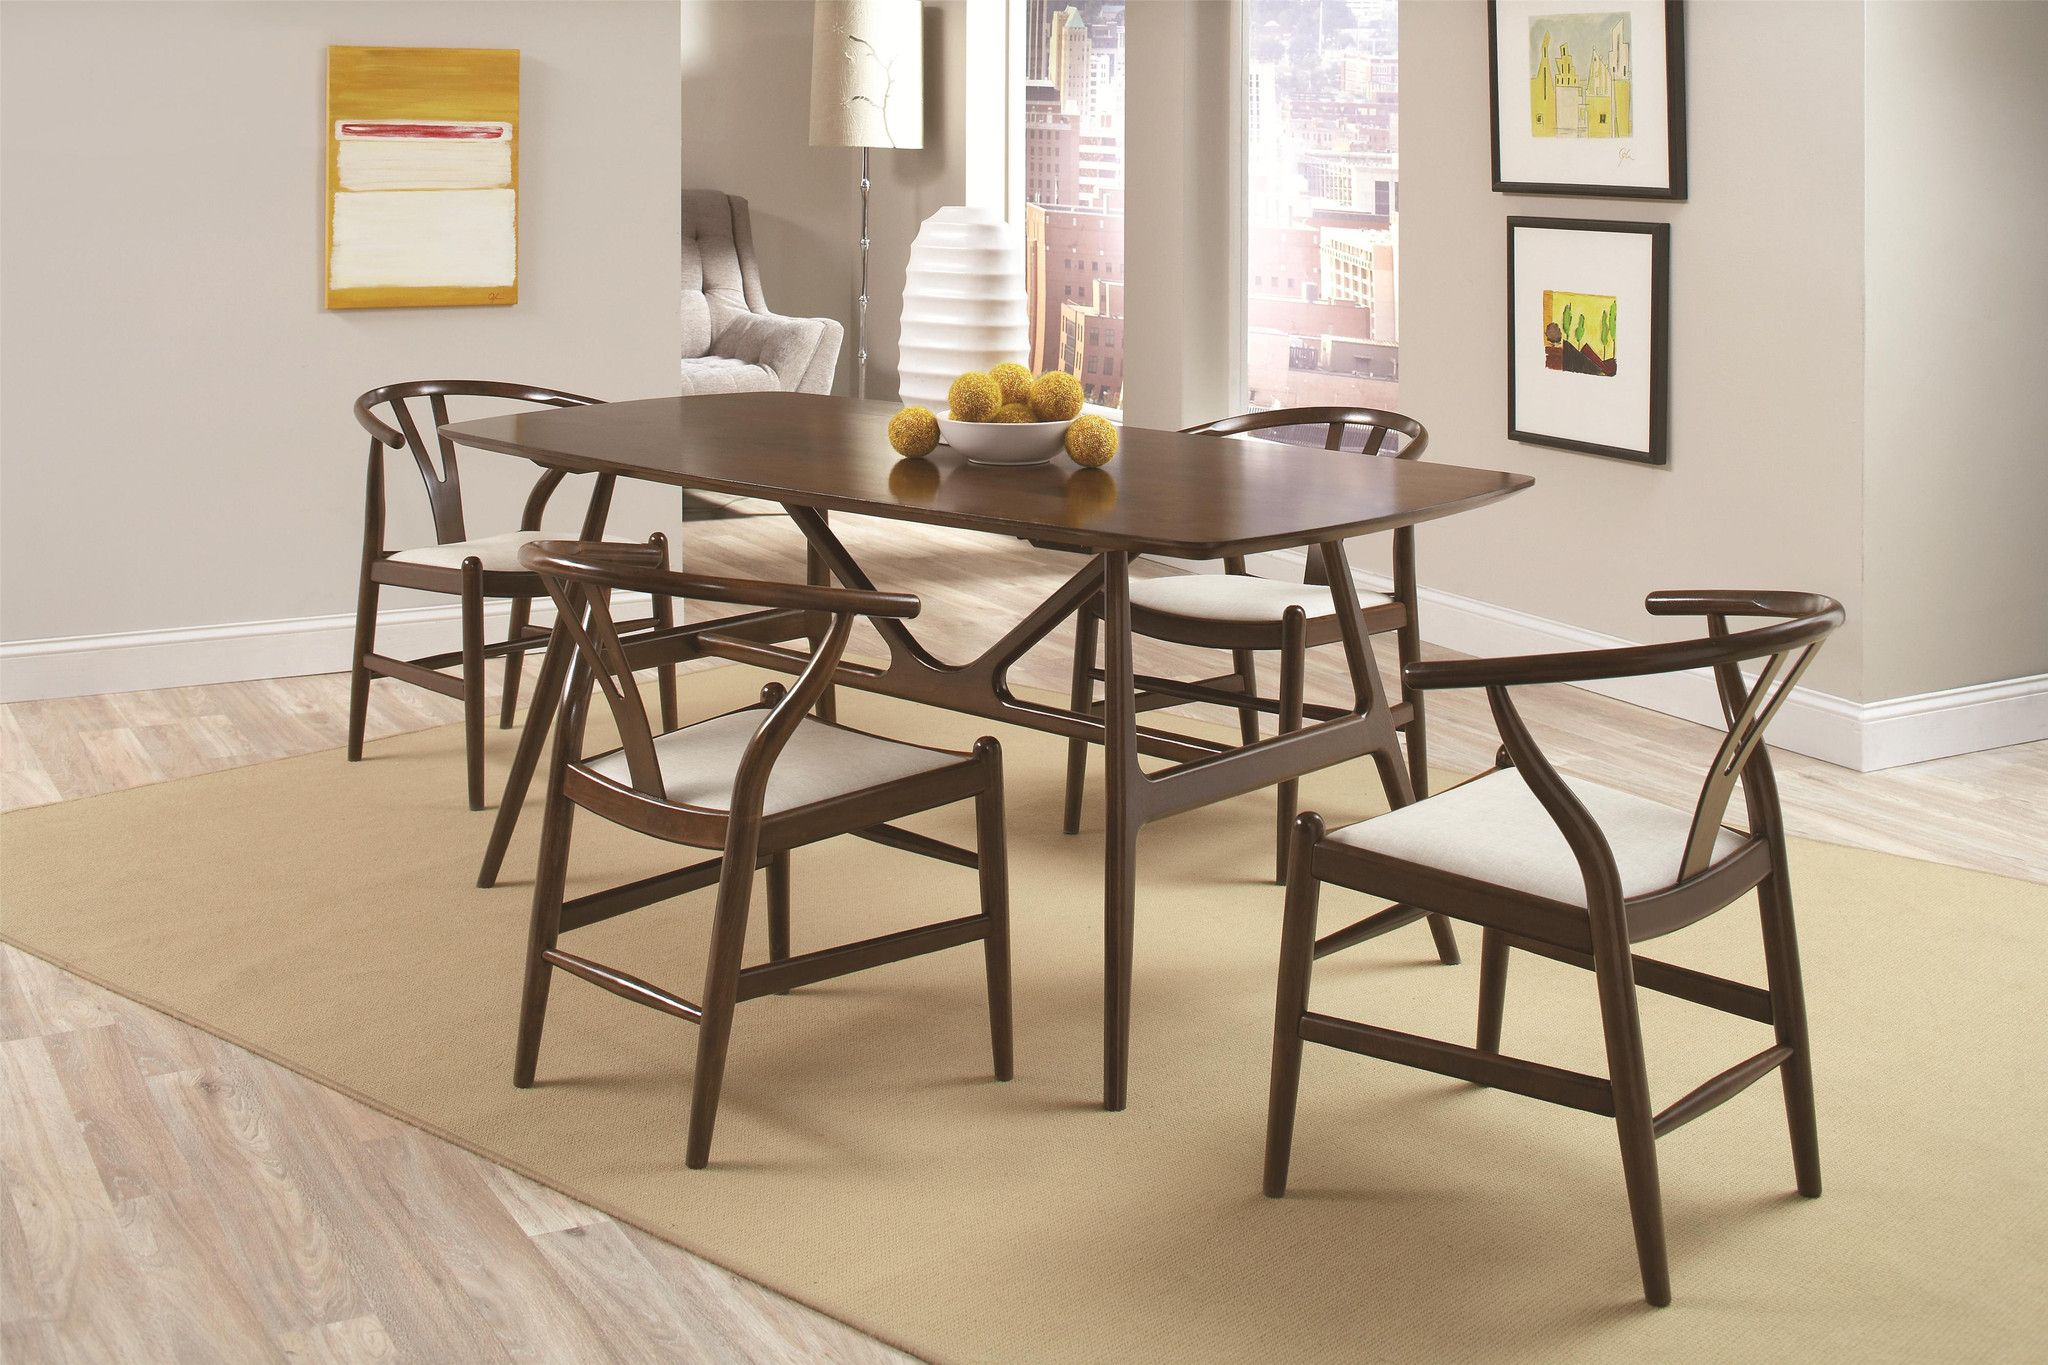 The Keresey Dining Set By Coaster Fine Furniture 102851 52x4